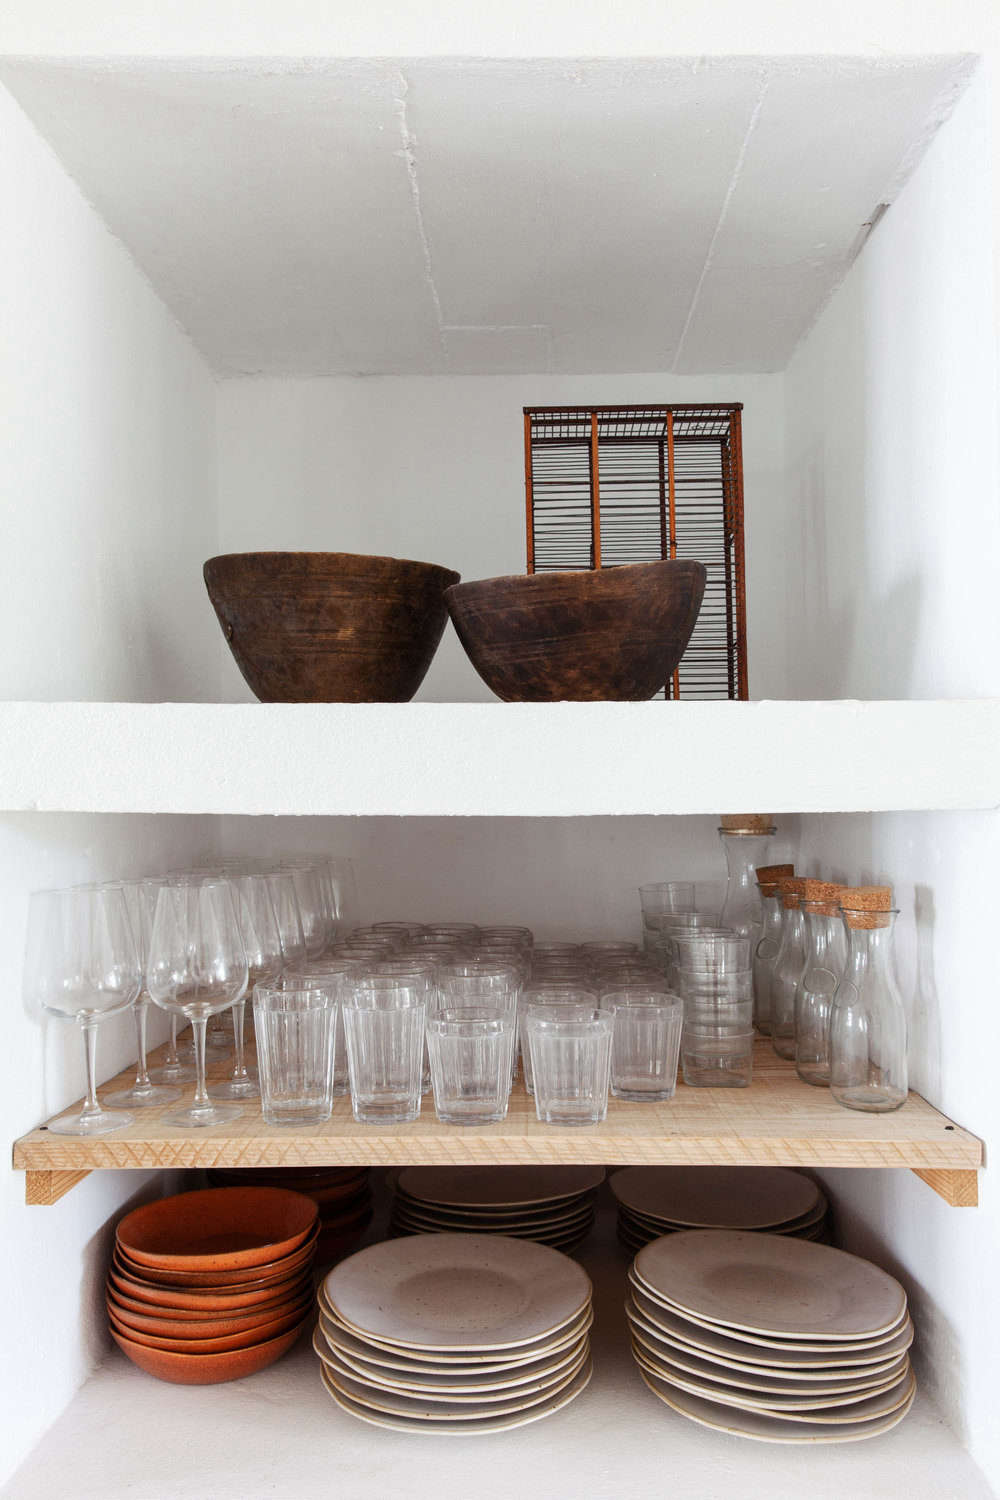 Shelves hold stacks of cream and terra cotta-colored dinnerware.